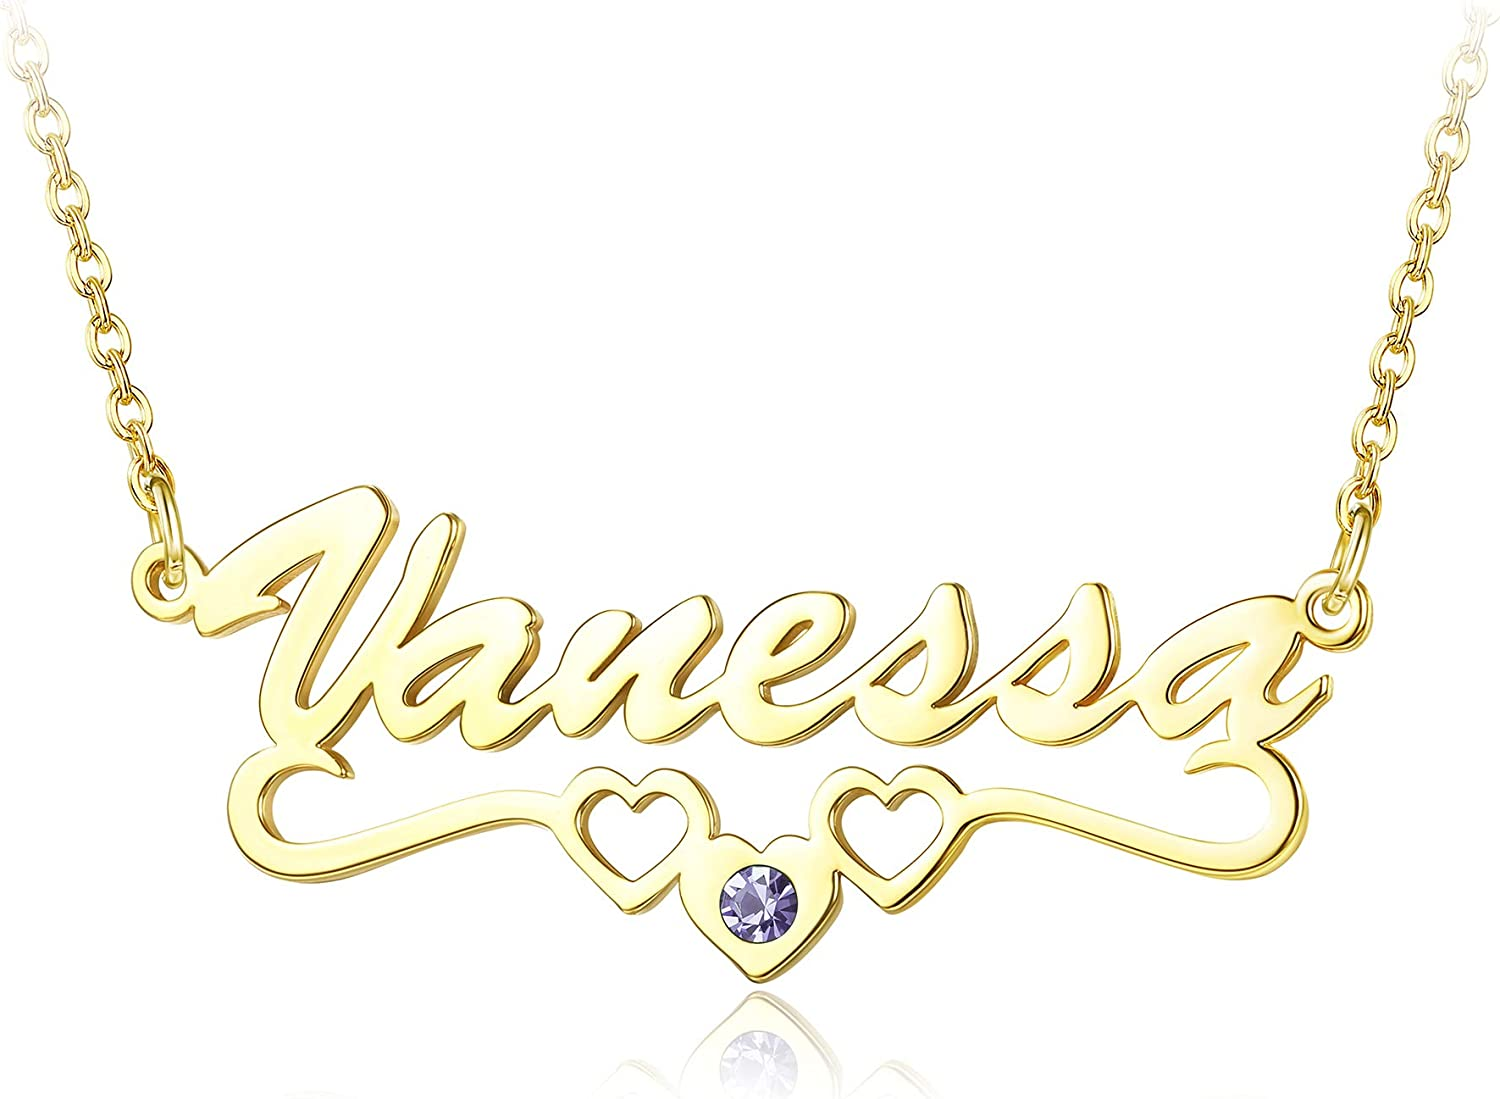 Jewenova free shipping Personalized Name Necklace Custom Plated 18K Gold 67% OFF of fixed price